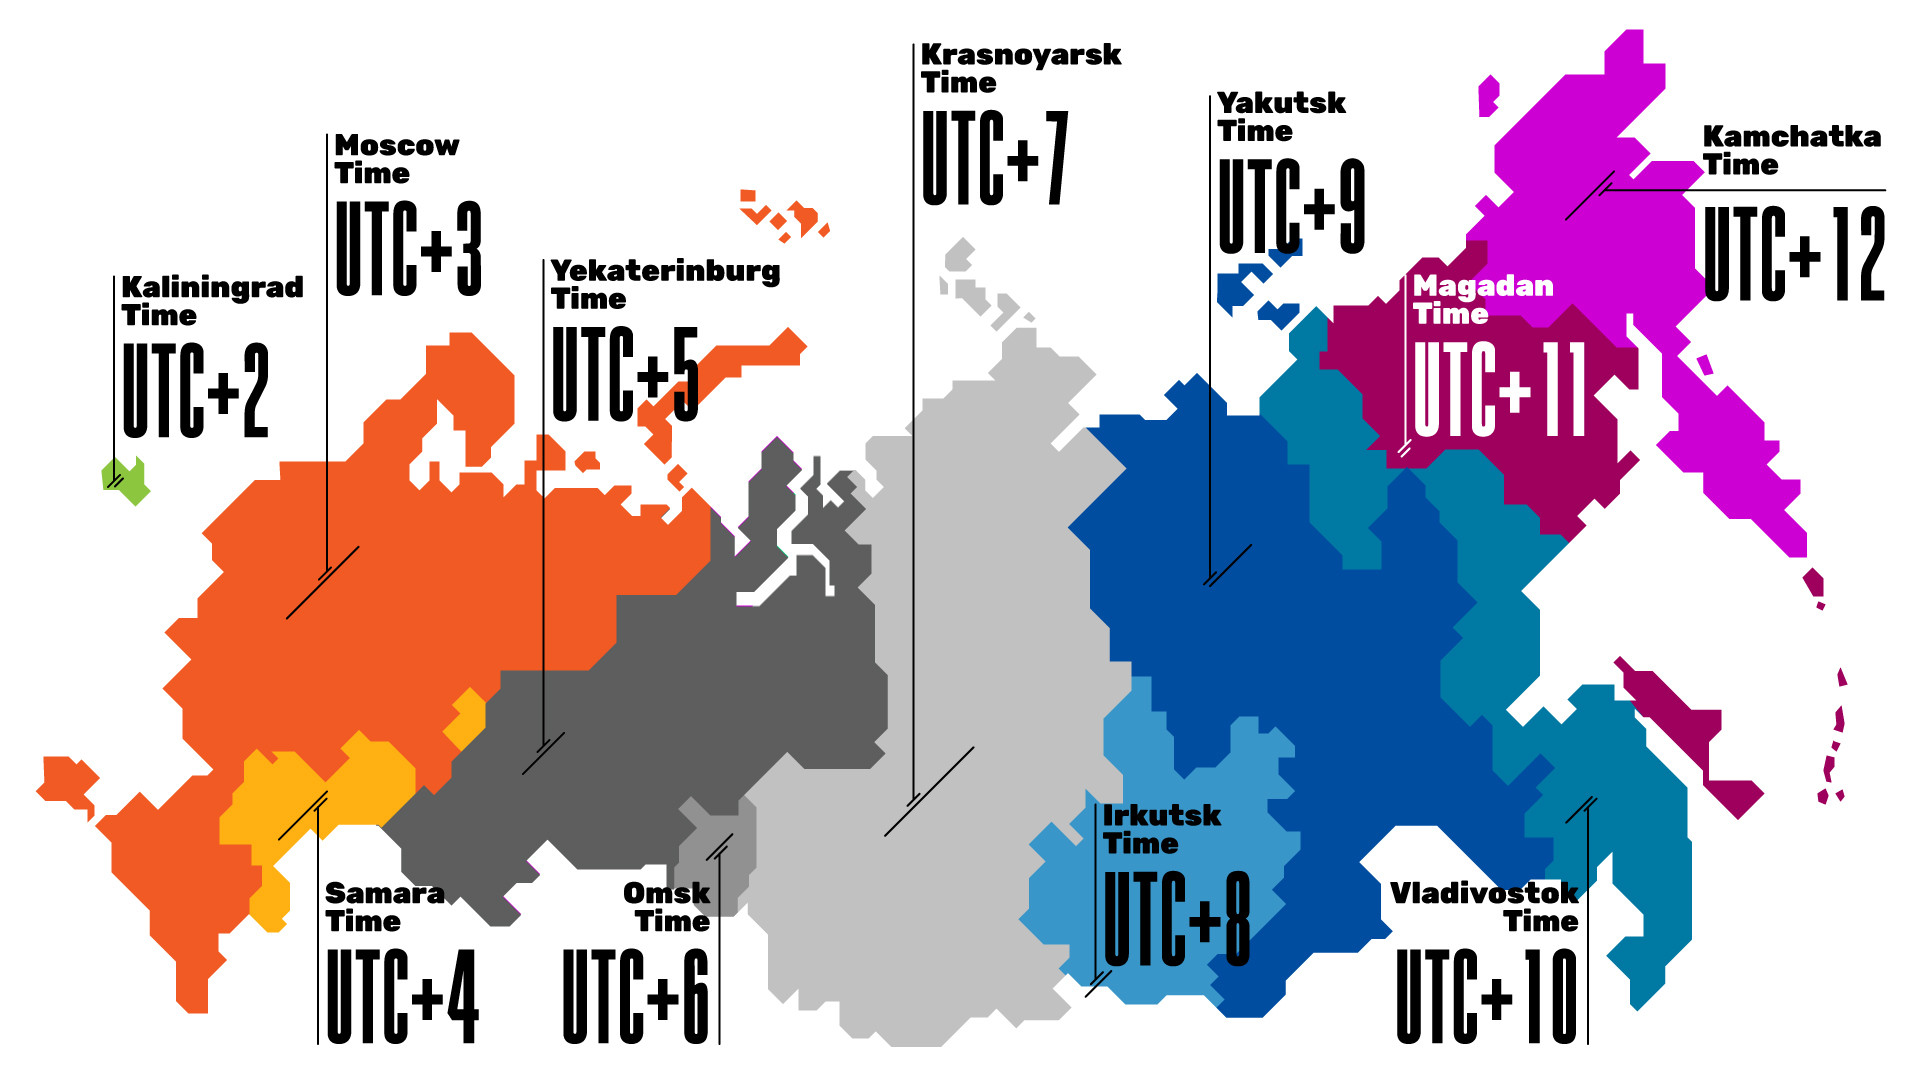 Time Zones In Russia Map.How Many Times Zones Are There In Russia Russia Beyond